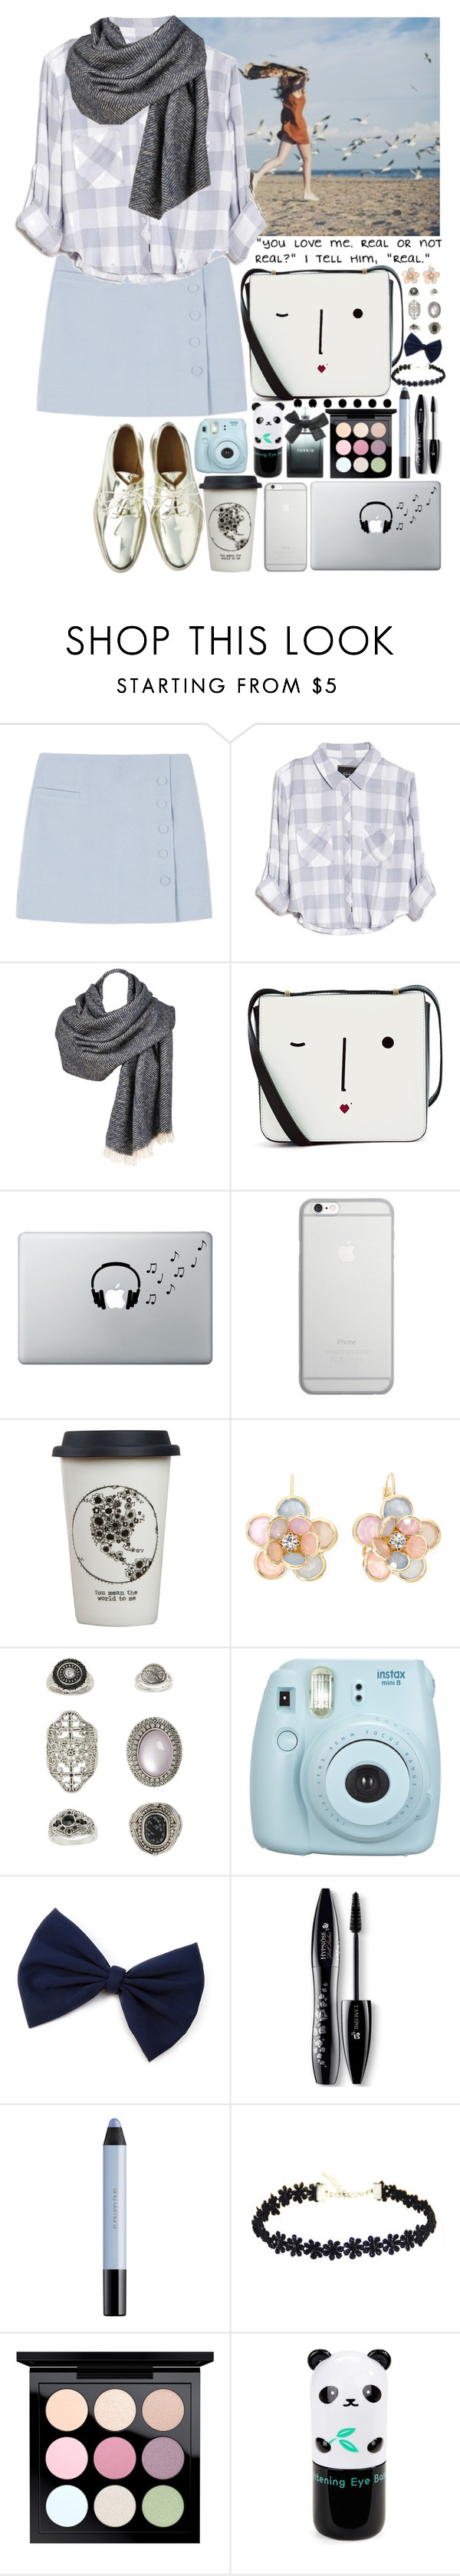 """Moça Esquiva"" by sandrafilipa ❤ liked on Polyvore featuring Rails, Zara, Lulu Guinness, Music Notes, Native Union, Natural Life, Mixit, Topshop, Lancôme and shu uemura"